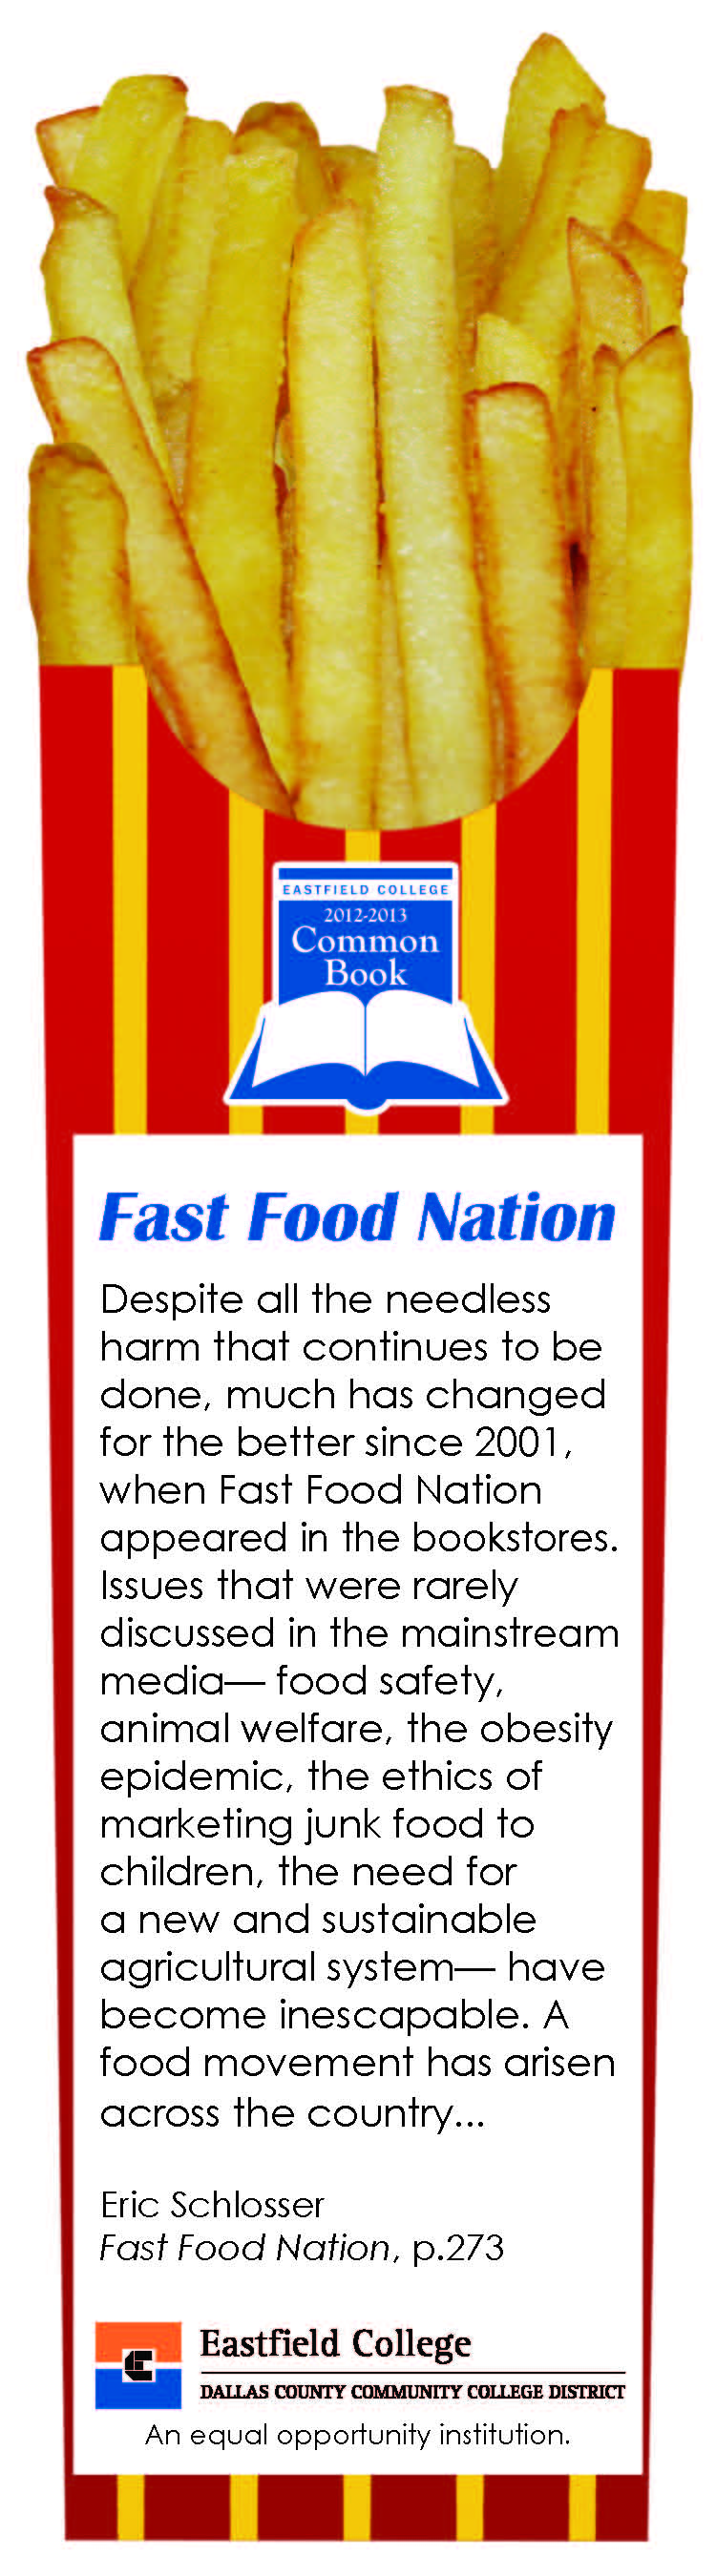 Bookmark text quote: Despite all the needless harm that continues to be done, much has changed for the better since 2001, when Fast Food Nation appeared in the bookstores. Issues that were rarely discussed in the mainstream media— food safety, animal welfare, the obesity epidemic, the ethics of marketing junk food to children, the need for a new and sustainable agricultural system— have become inescapable. A food movement has arisen across the country...  Eric Schlosser Fast Food Nation, p.273